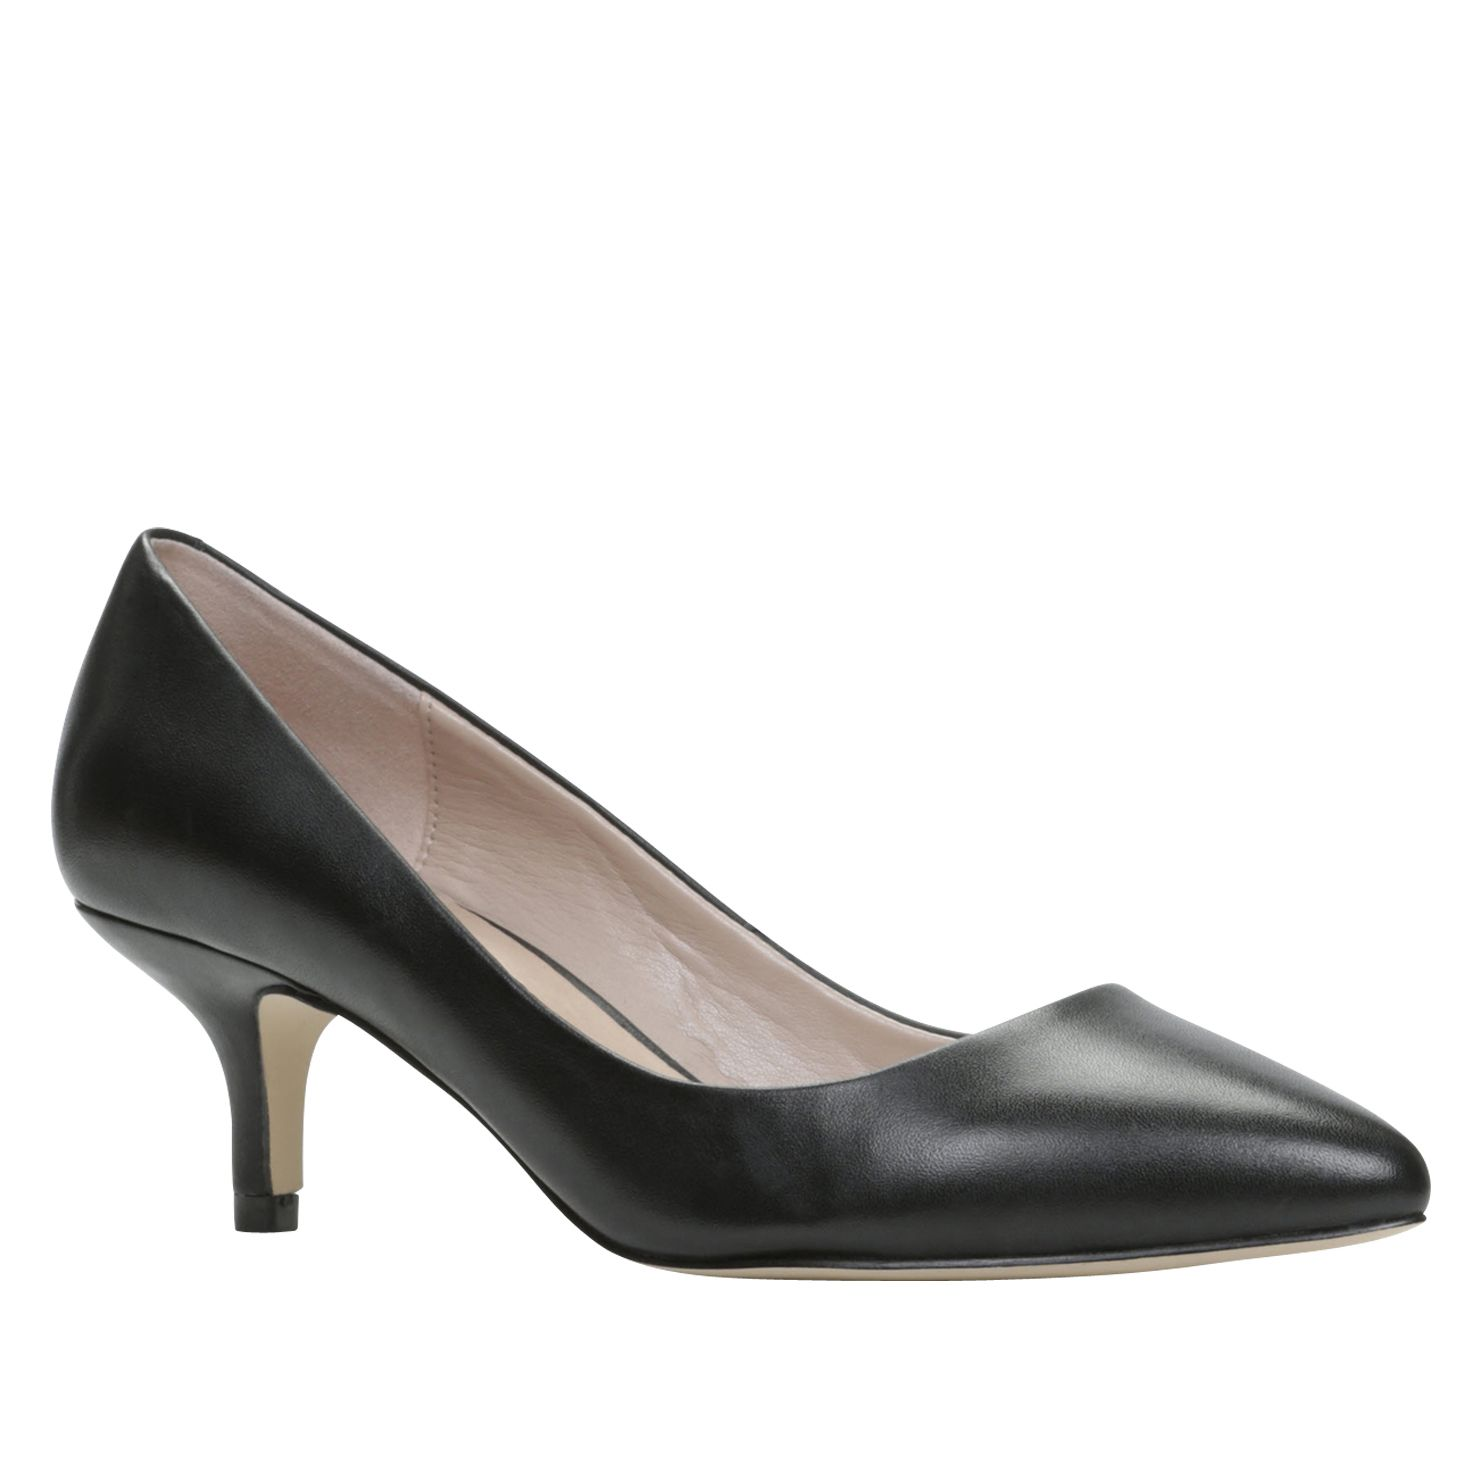 Casavecchie mid heel pointed toe court shoes